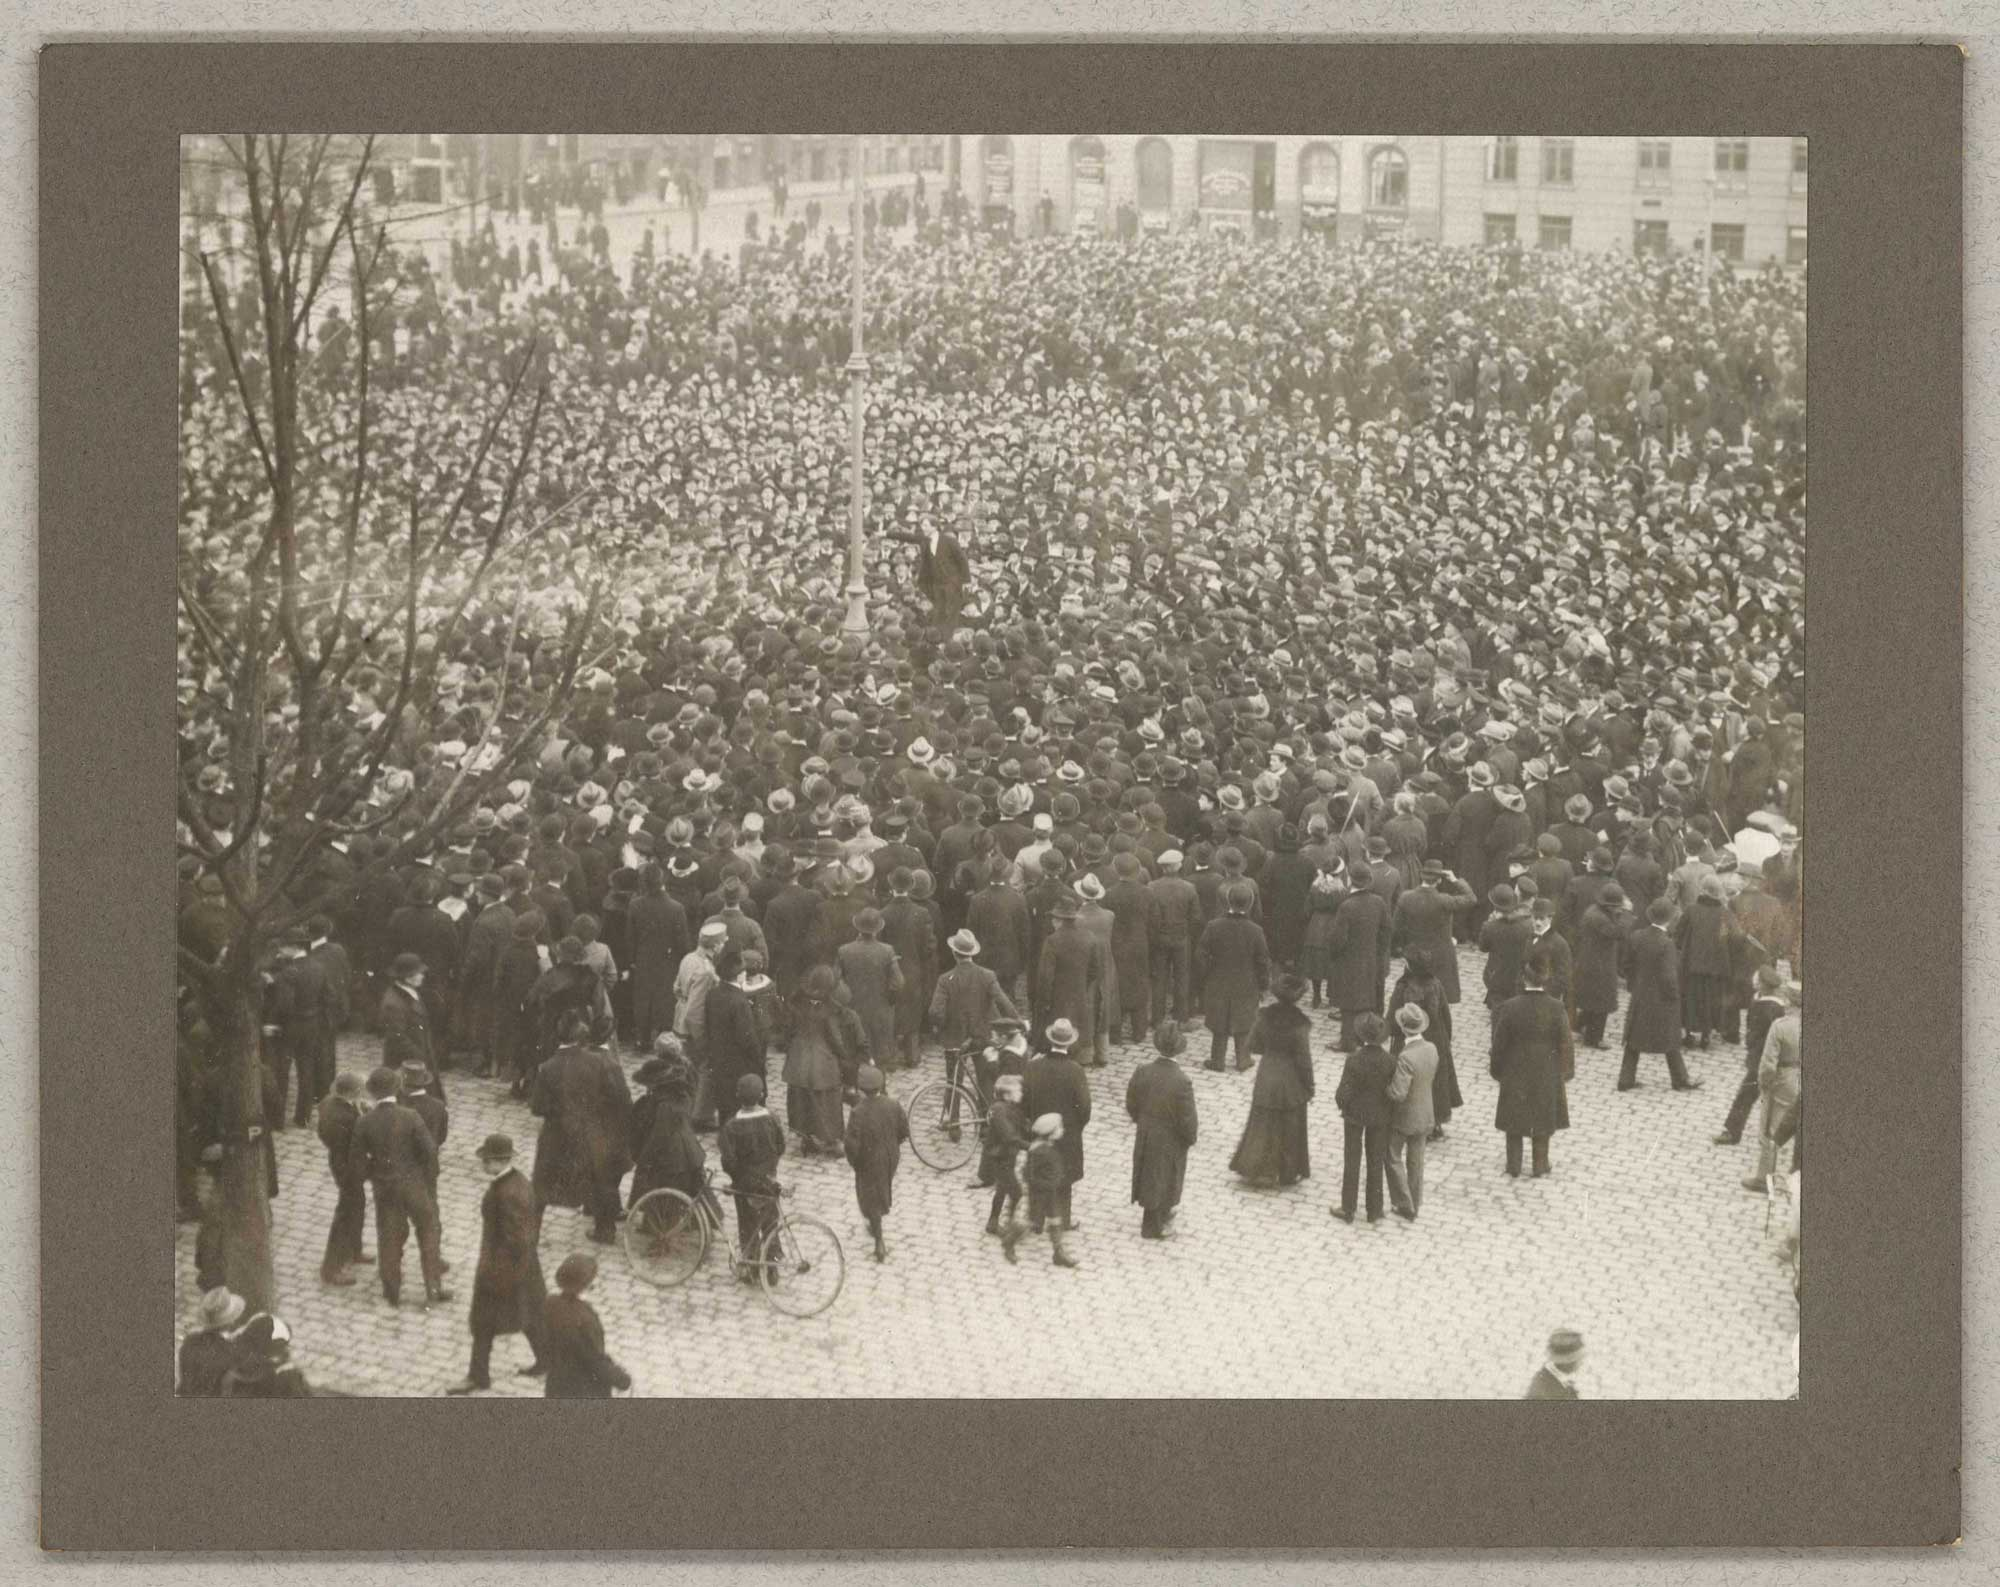 Danish syndicalist Thørger Thørgersen speaking at a demonstration in Copenhagen (Grønttorvet)